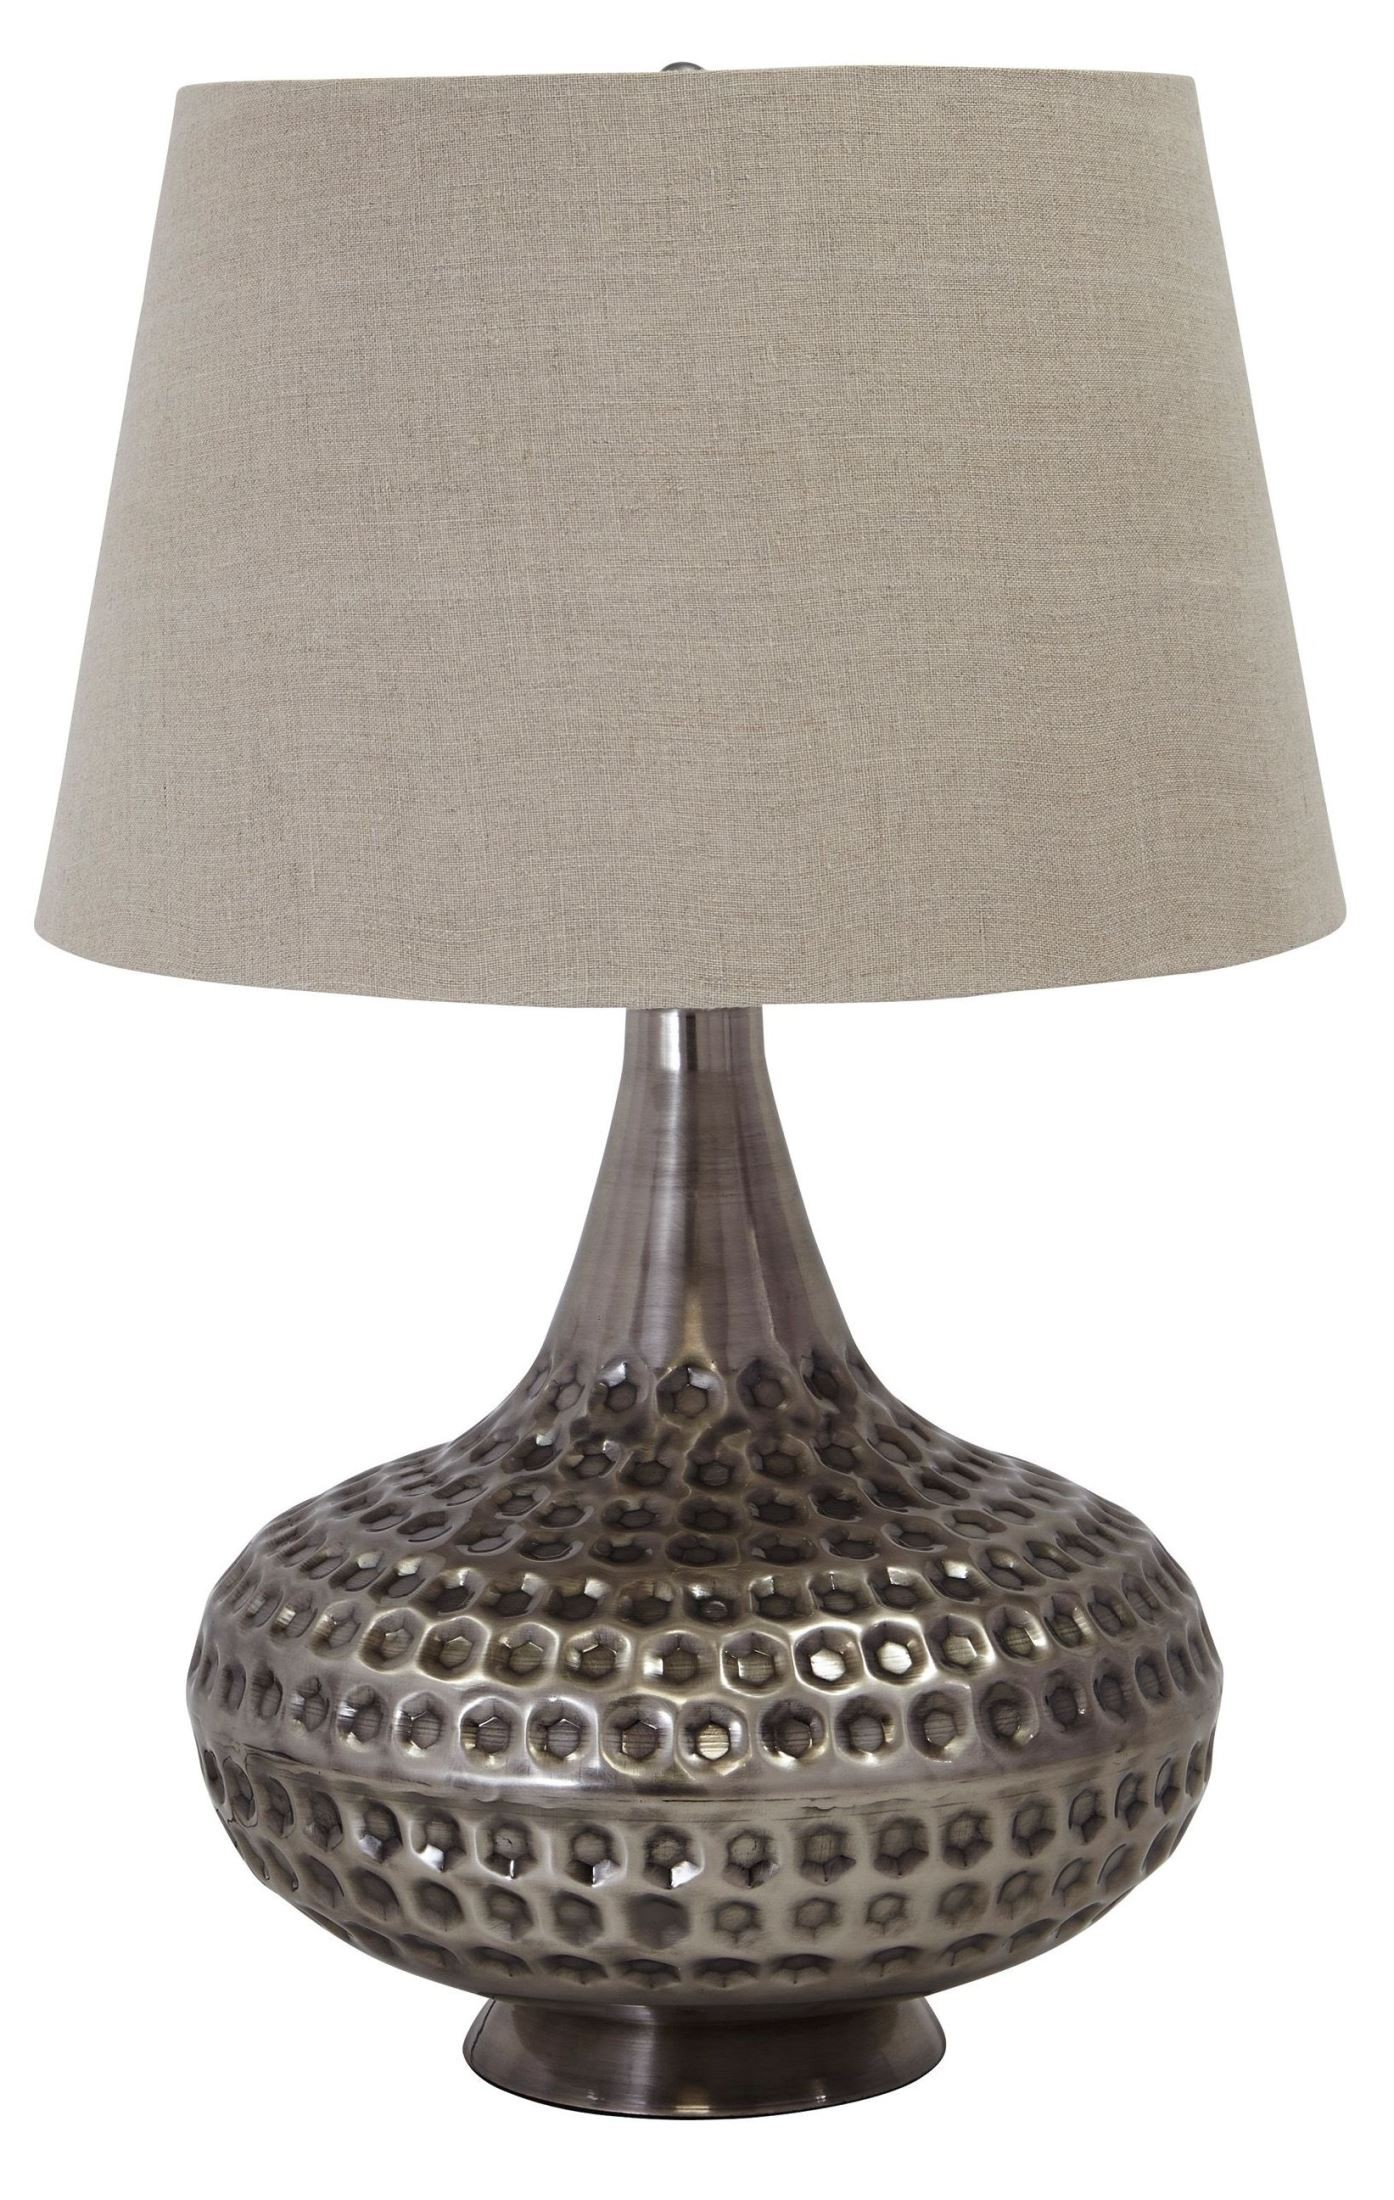 Pewter Metal Table Lamp From Ashley L207844